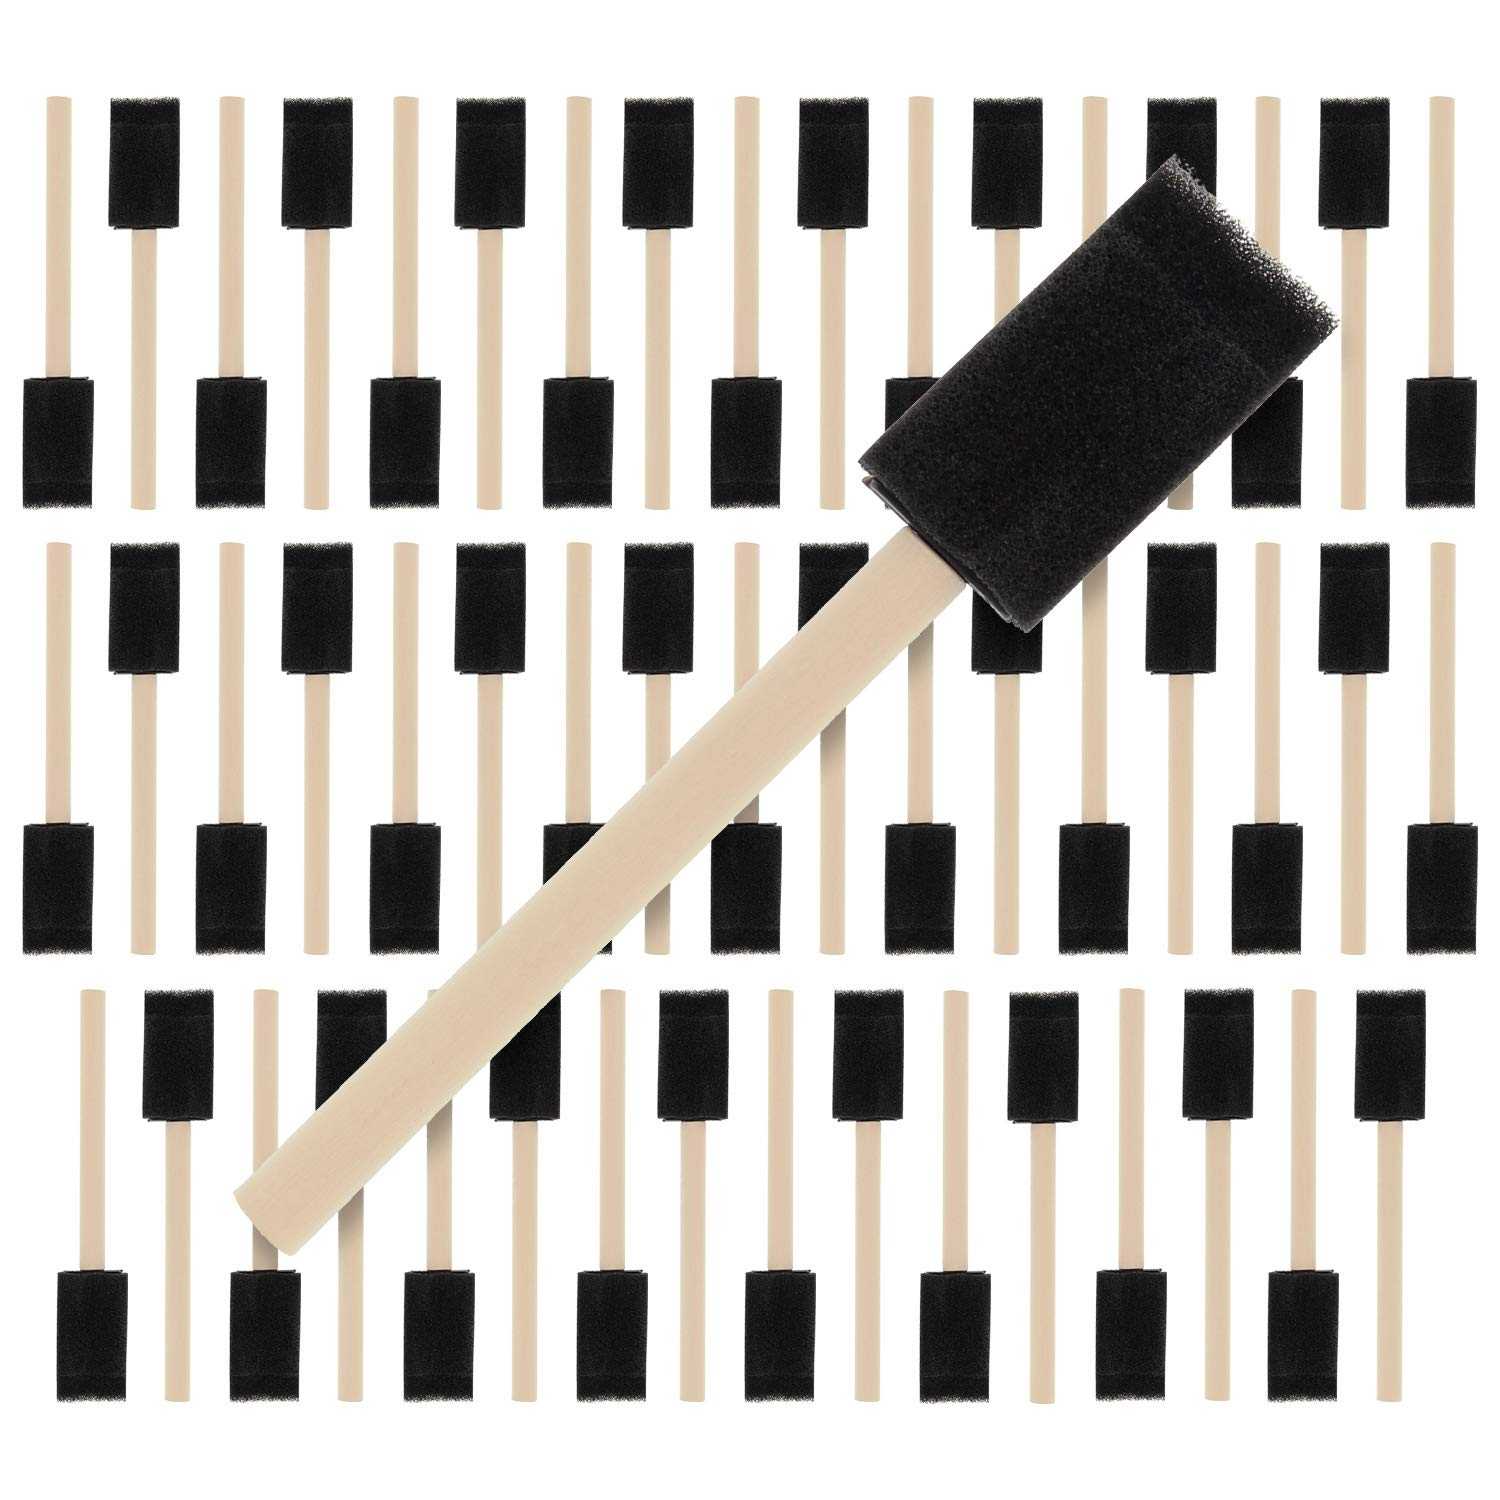 US Art Supply 1 inch Foam Sponge Wood Handle Paint Brush Set (Super Value Pack of 50) - Lightweight, Durable and Great for Acrylics, Stains, Varnishes, Crafts, Art by US Art Supply